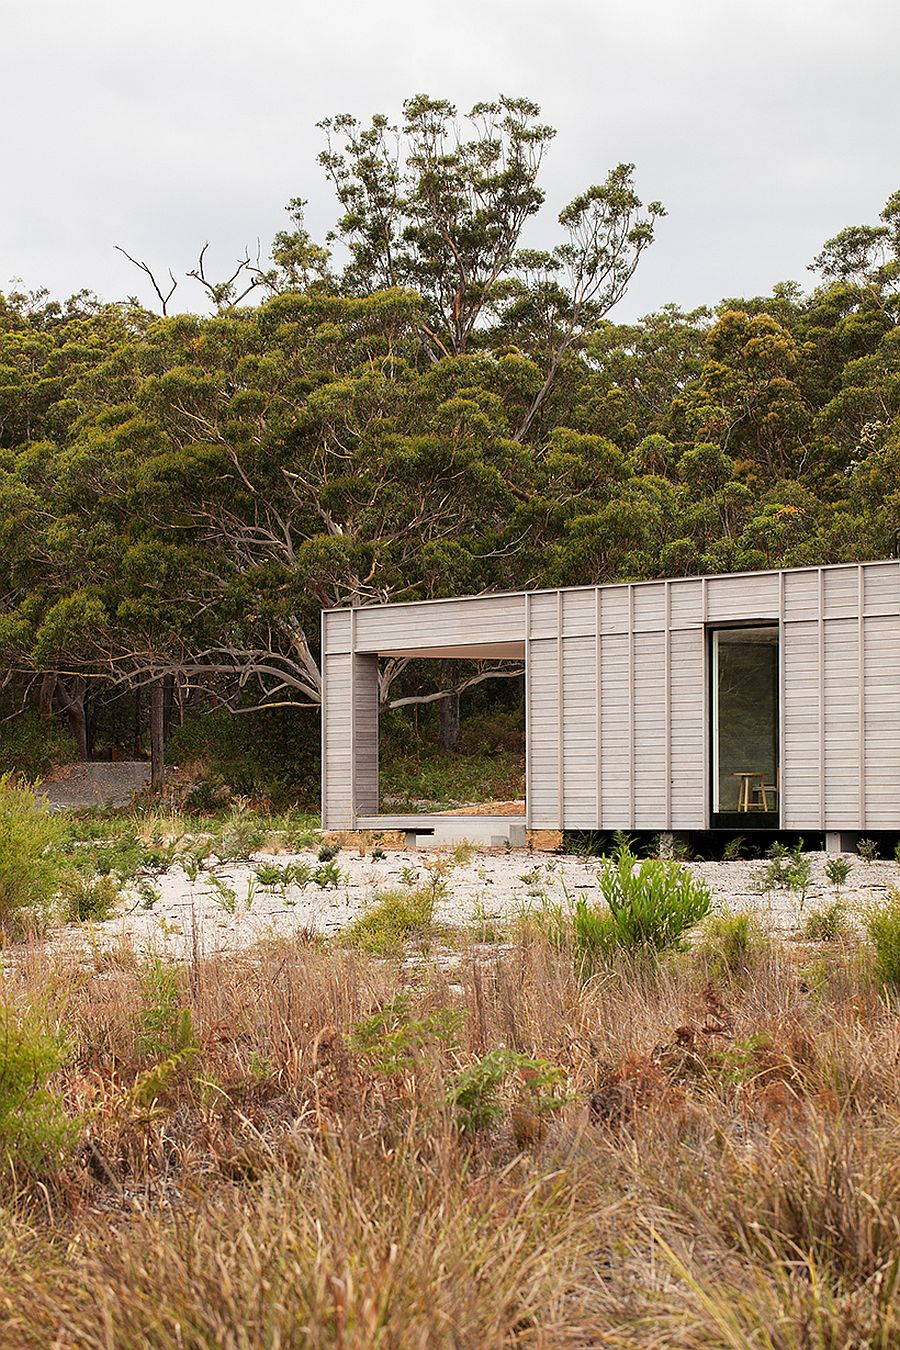 Elevated-design-of-the-prefab-ensures-it-leaves-the-landscape-as-untouched-as-possible-58505